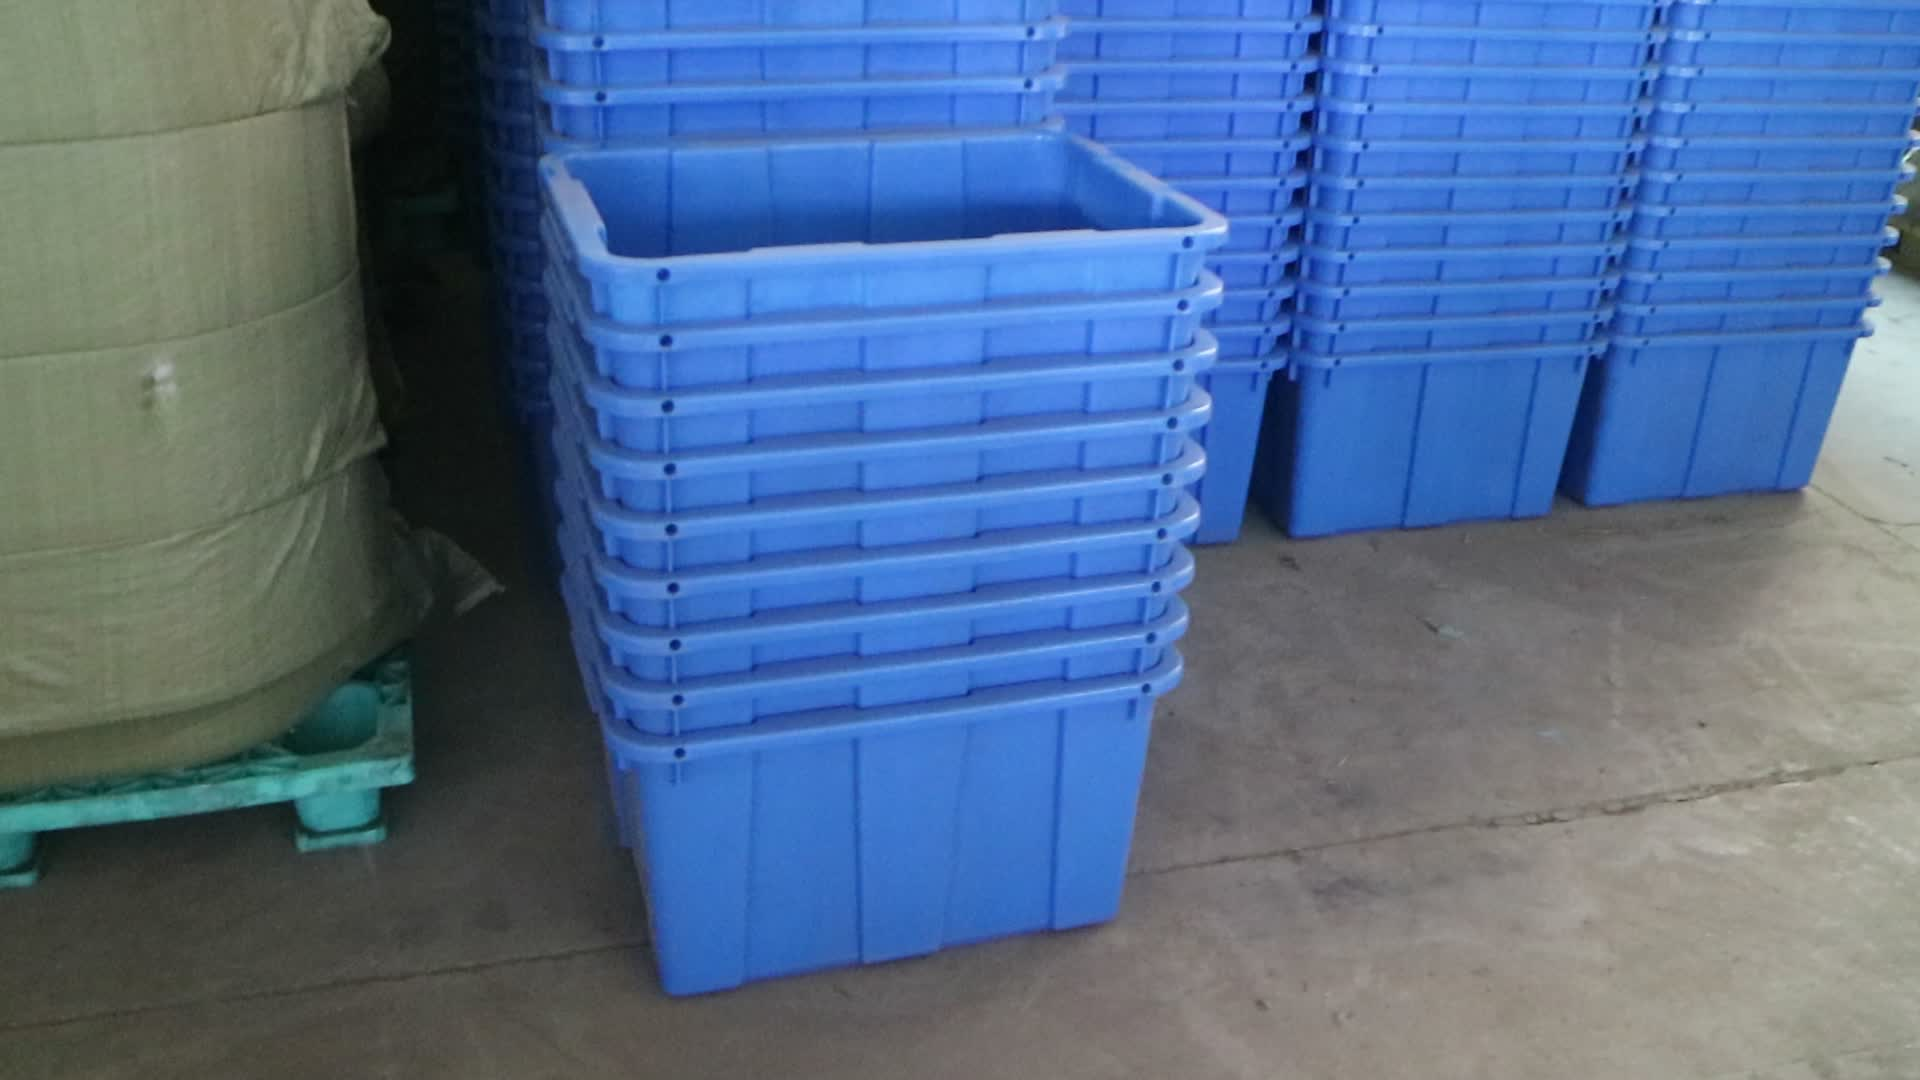 tub catering disposables supplies food large tubs packaging plastic products